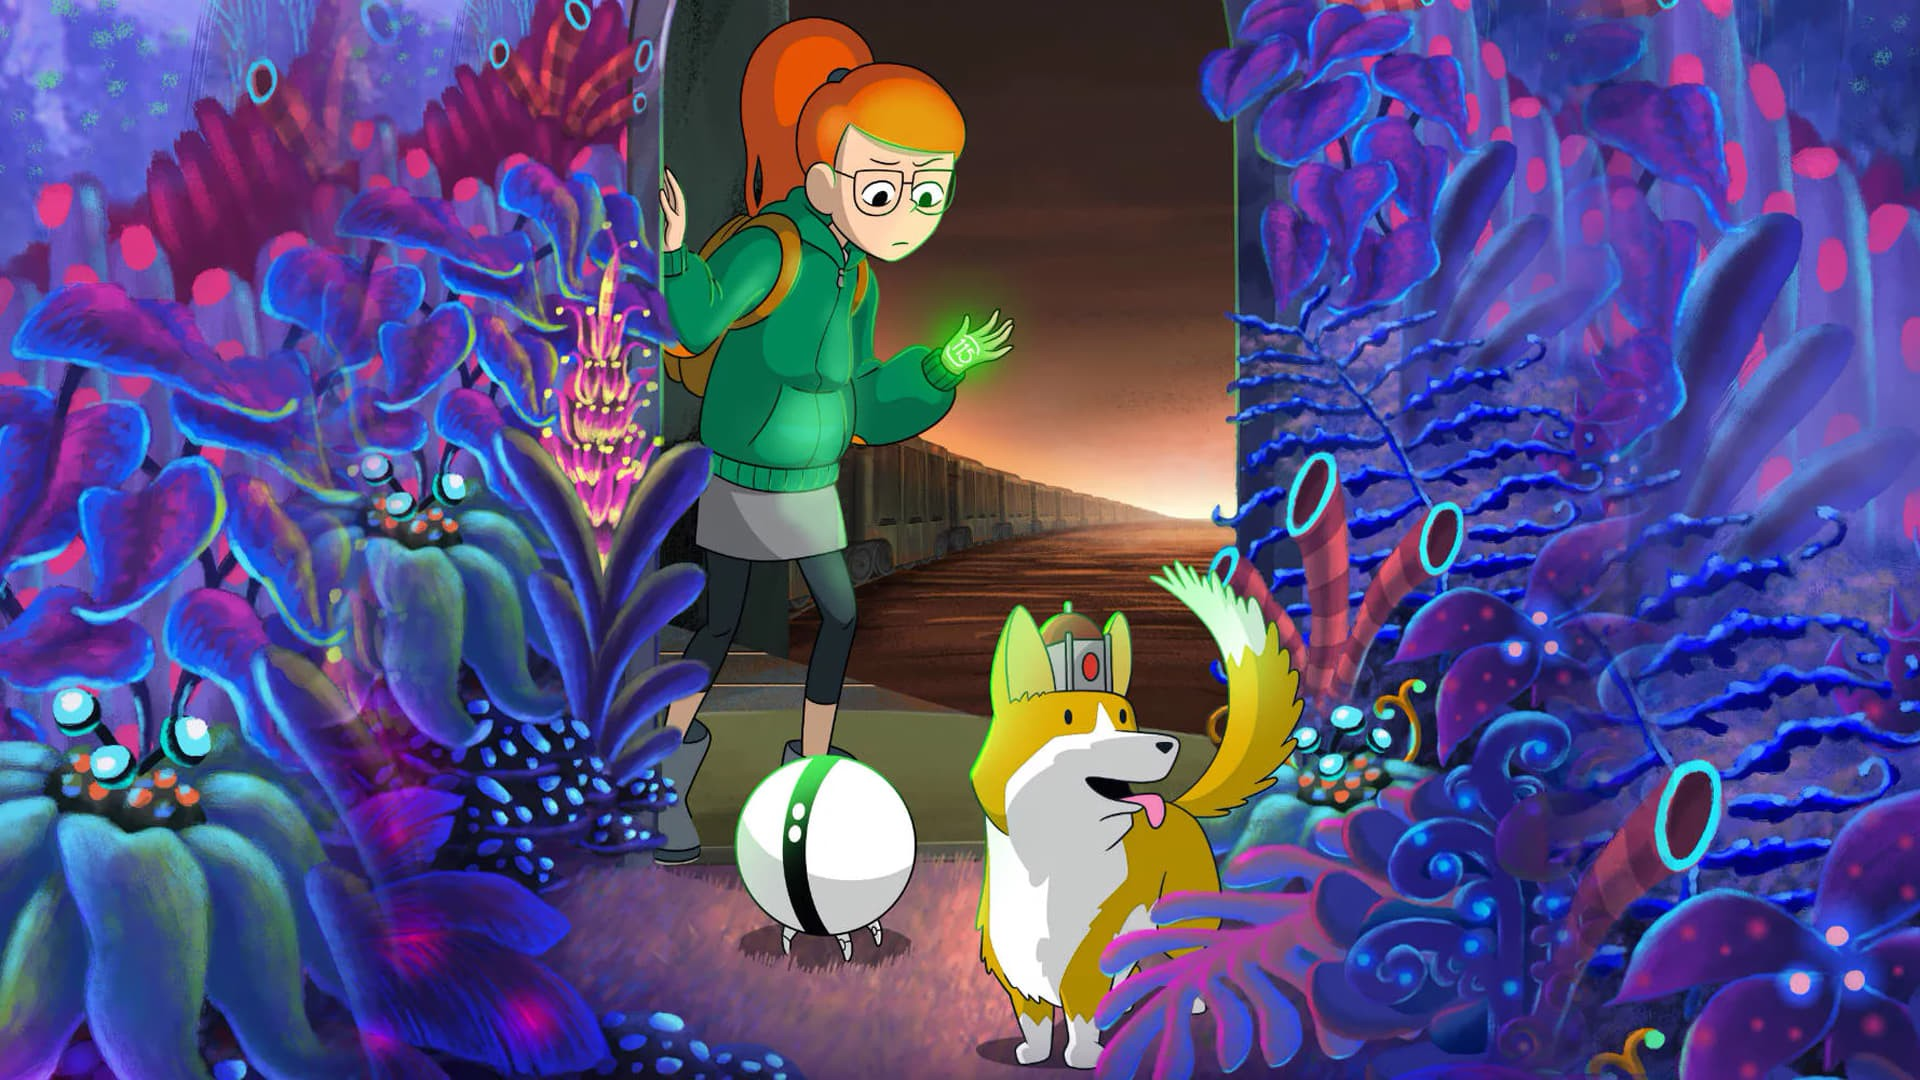 Infinity Train Wallpaper Picture hd